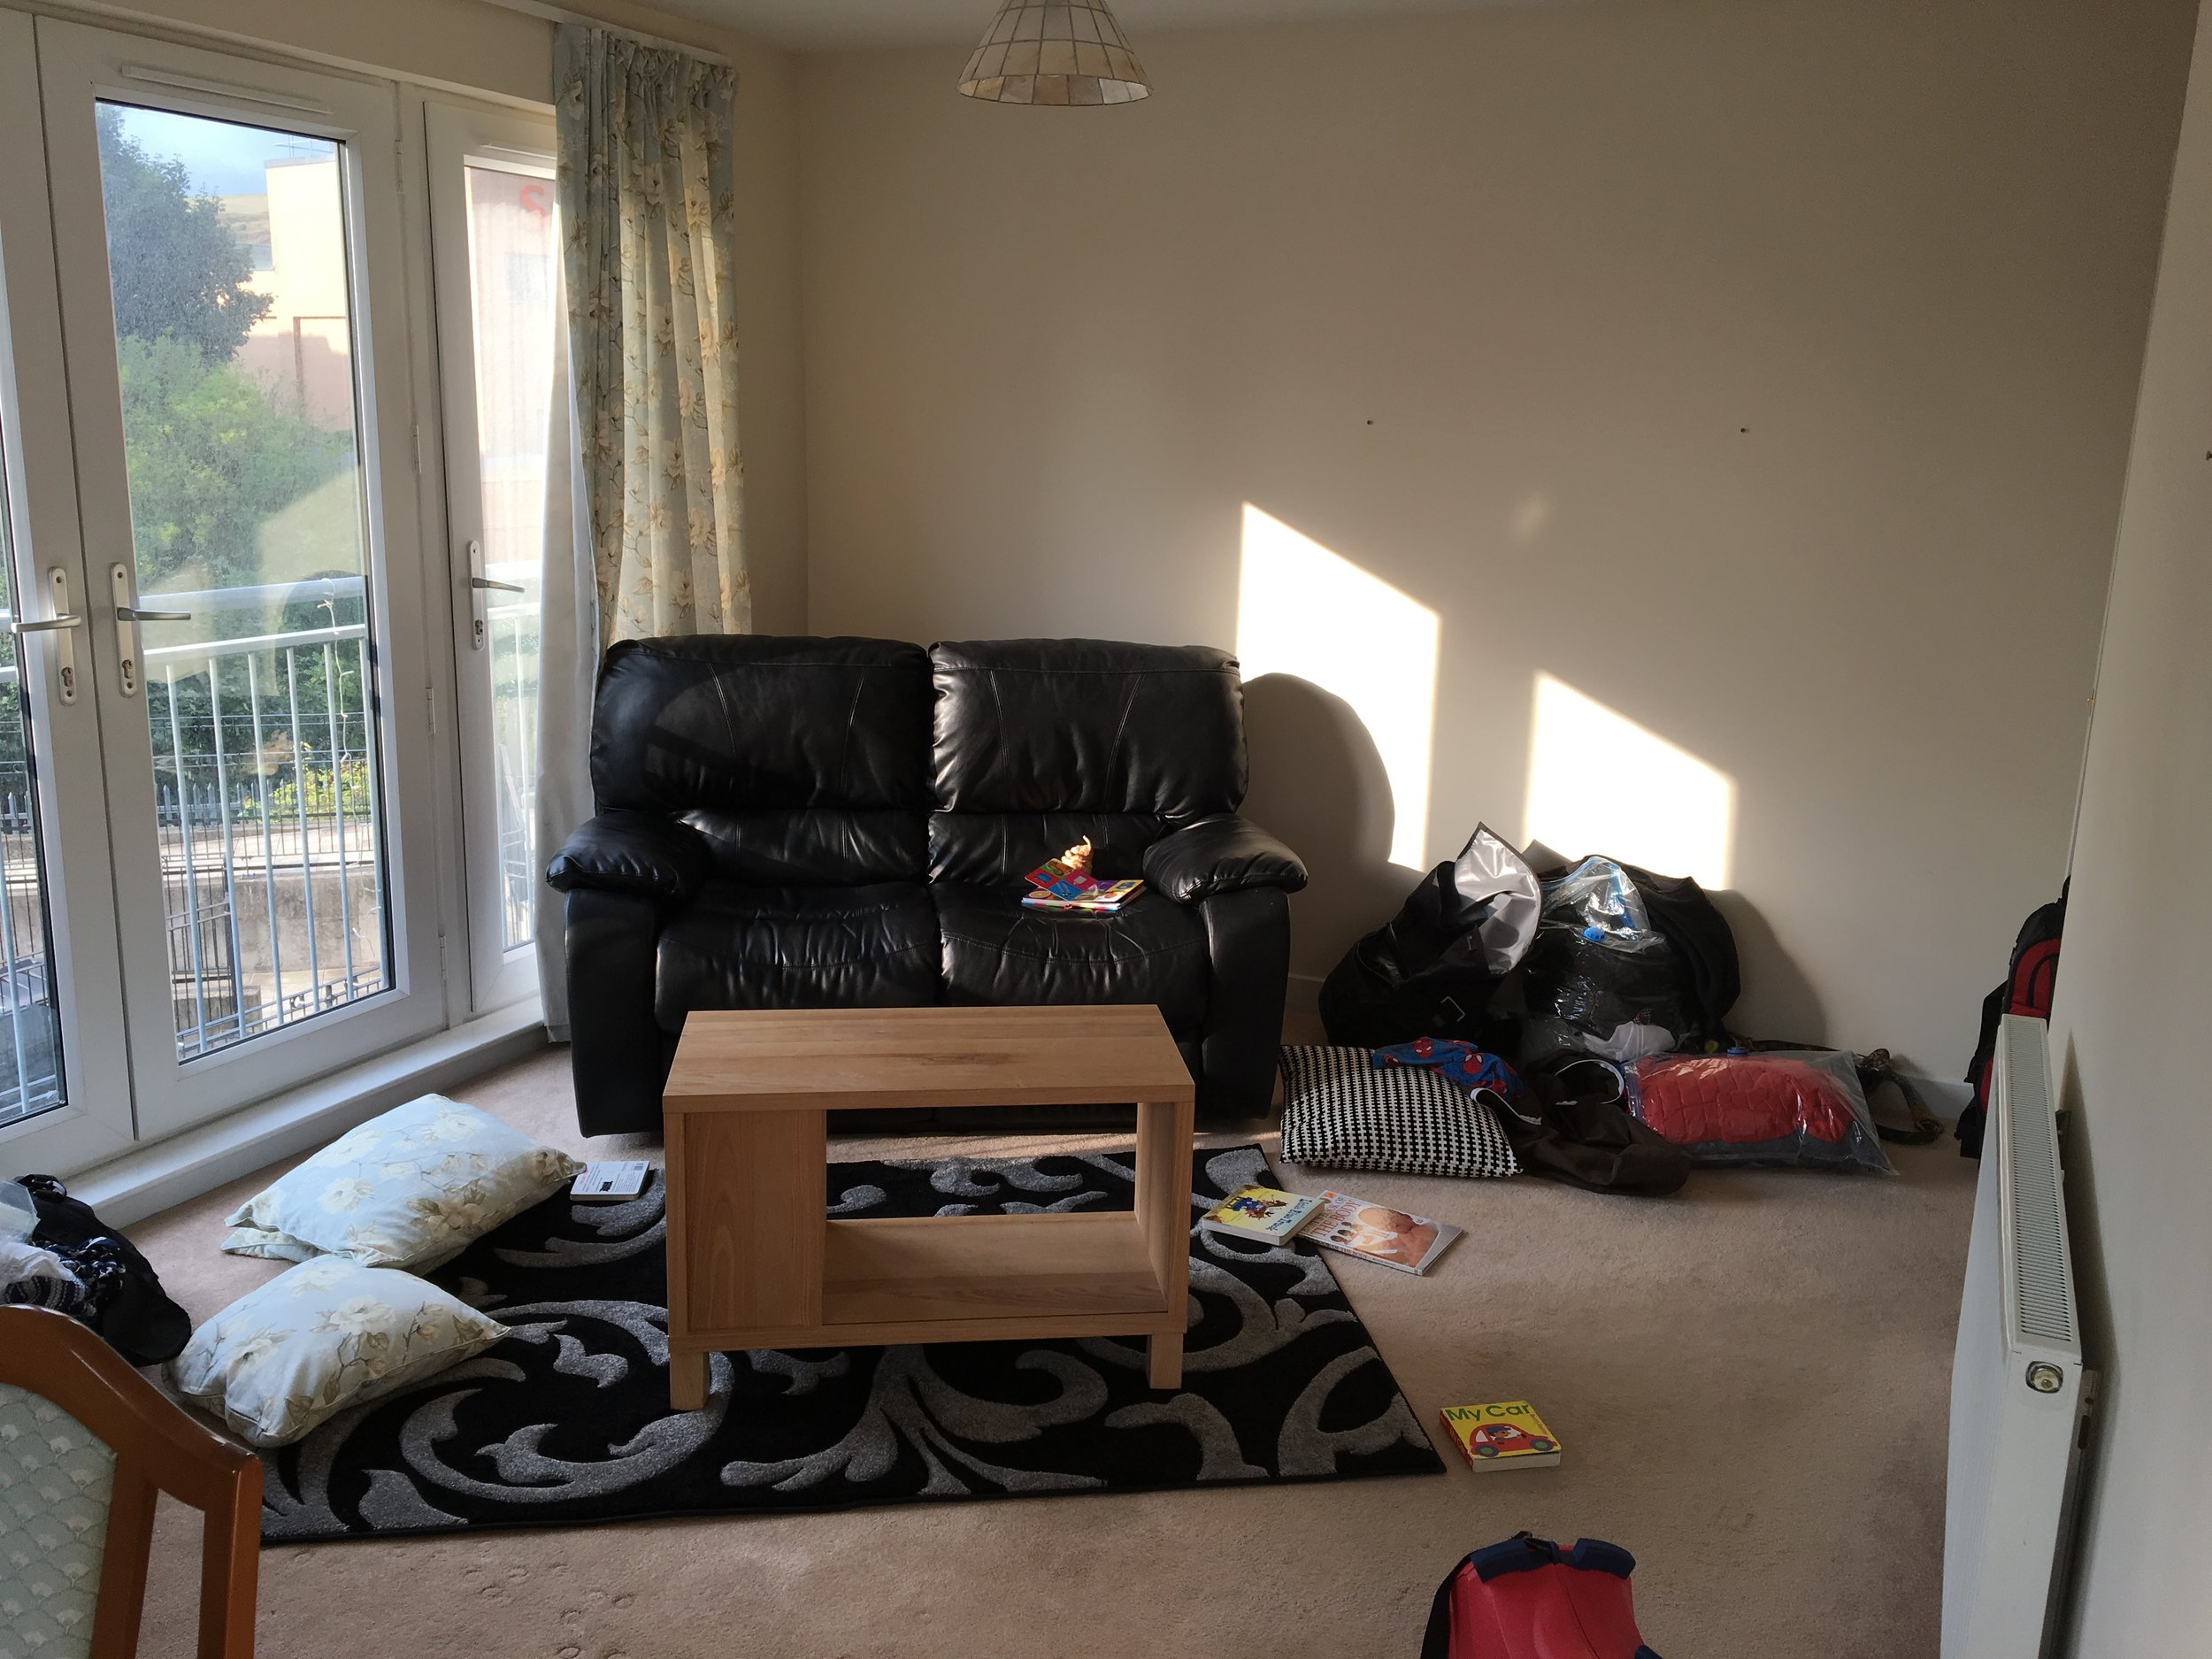 The living room of our flat today.